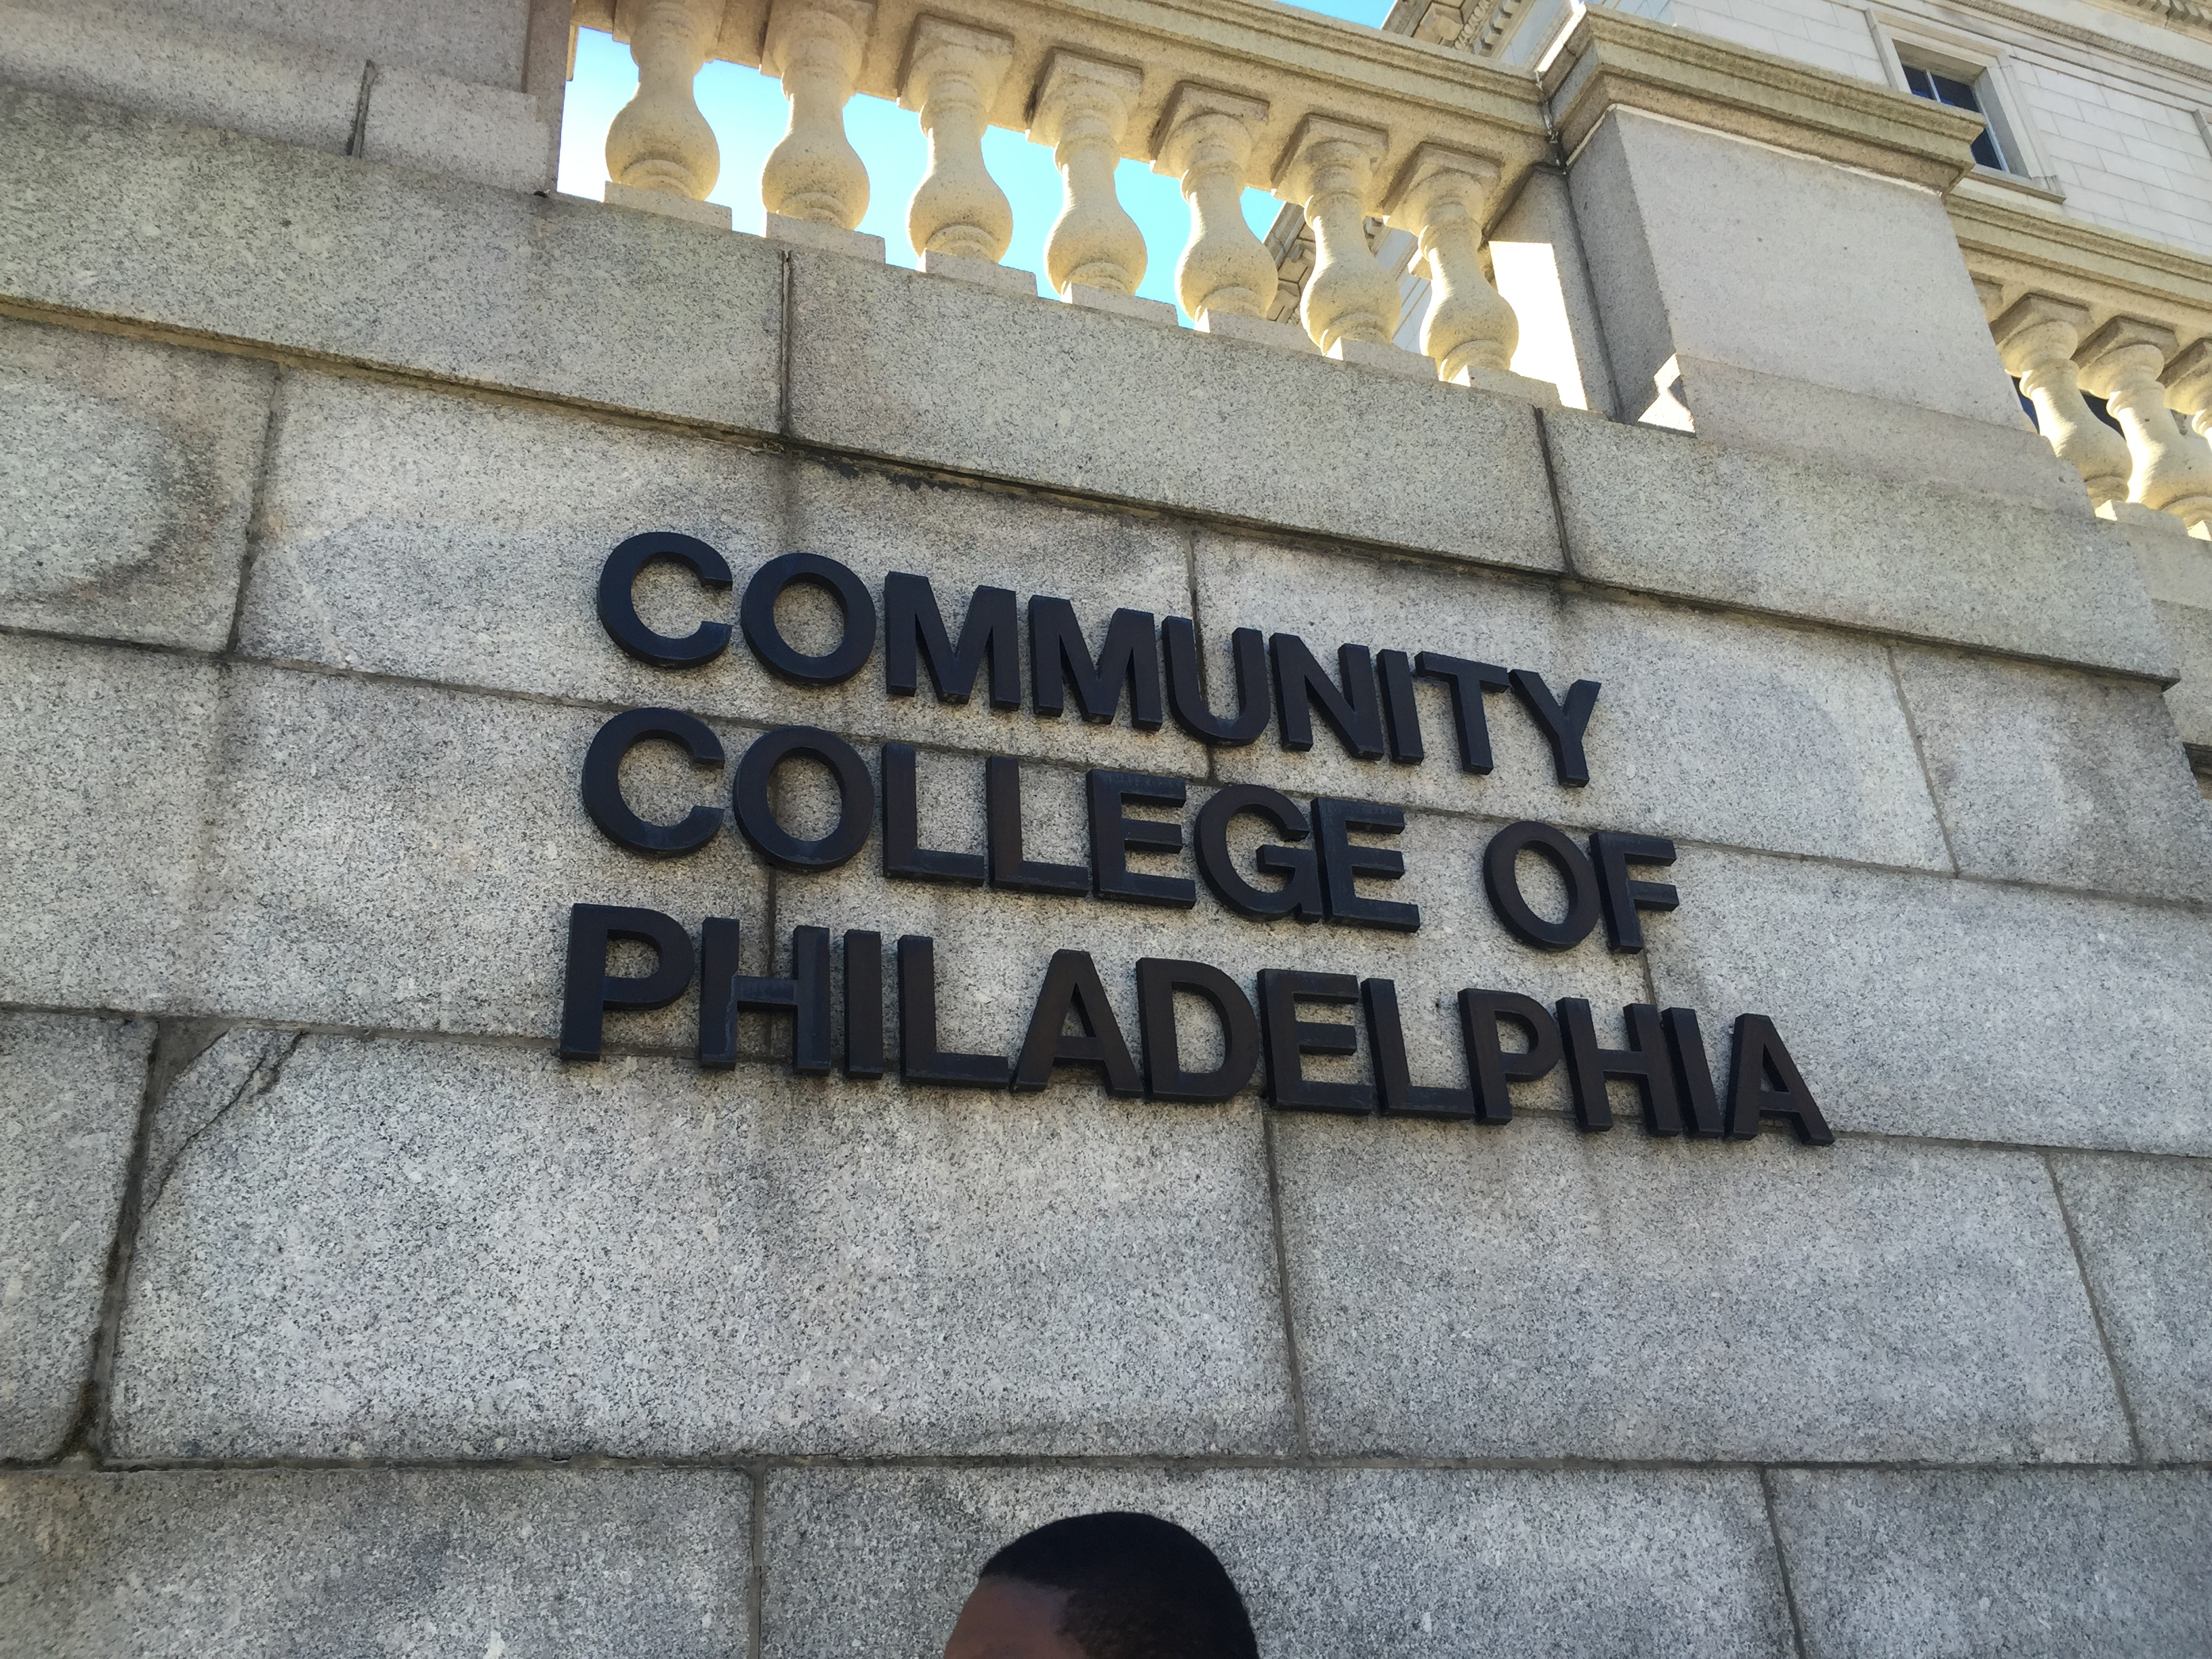 Community College of Philadelphia Goes into Lockdown after threat made with a gun occurs on campus.